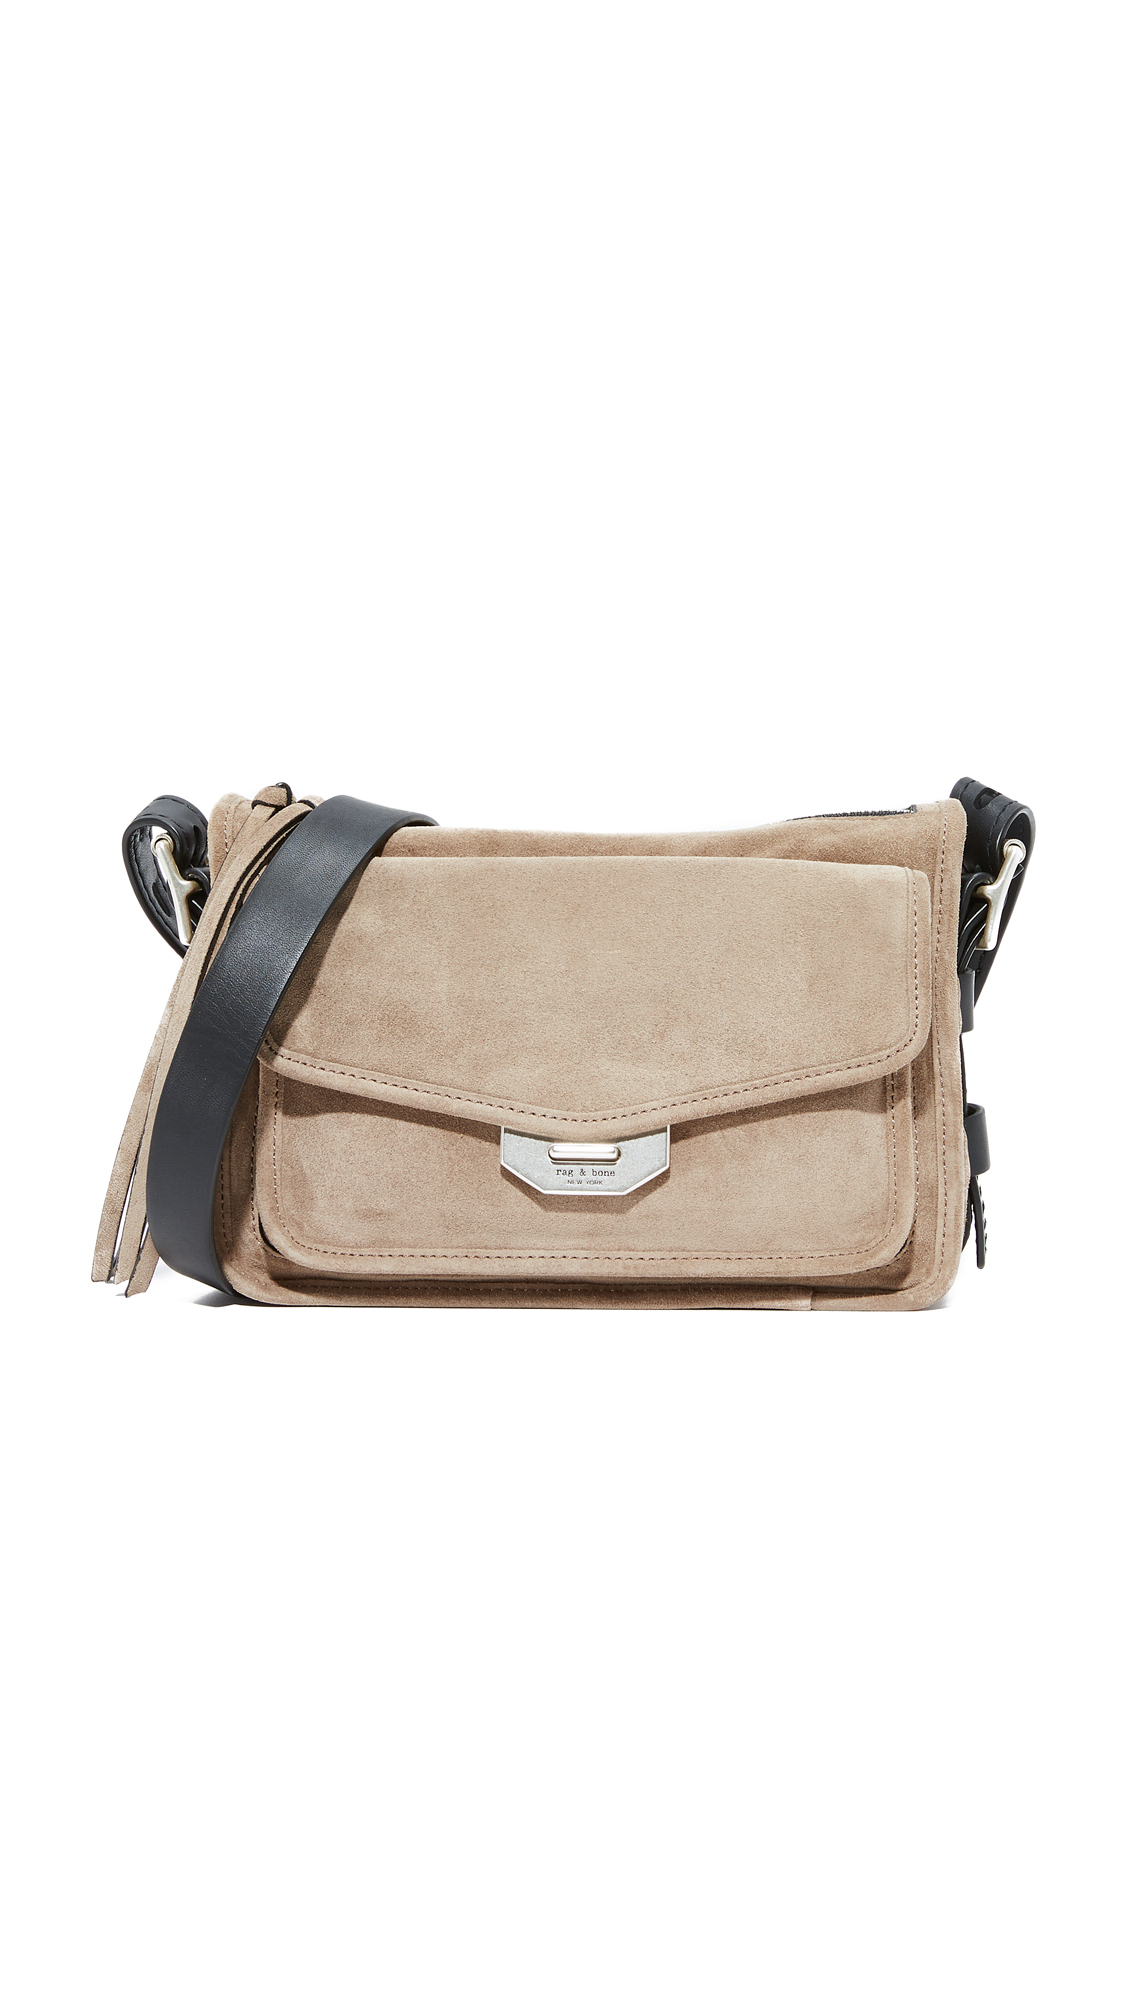 Rag & Bone Small Field Messenger Bag - Warm Grey